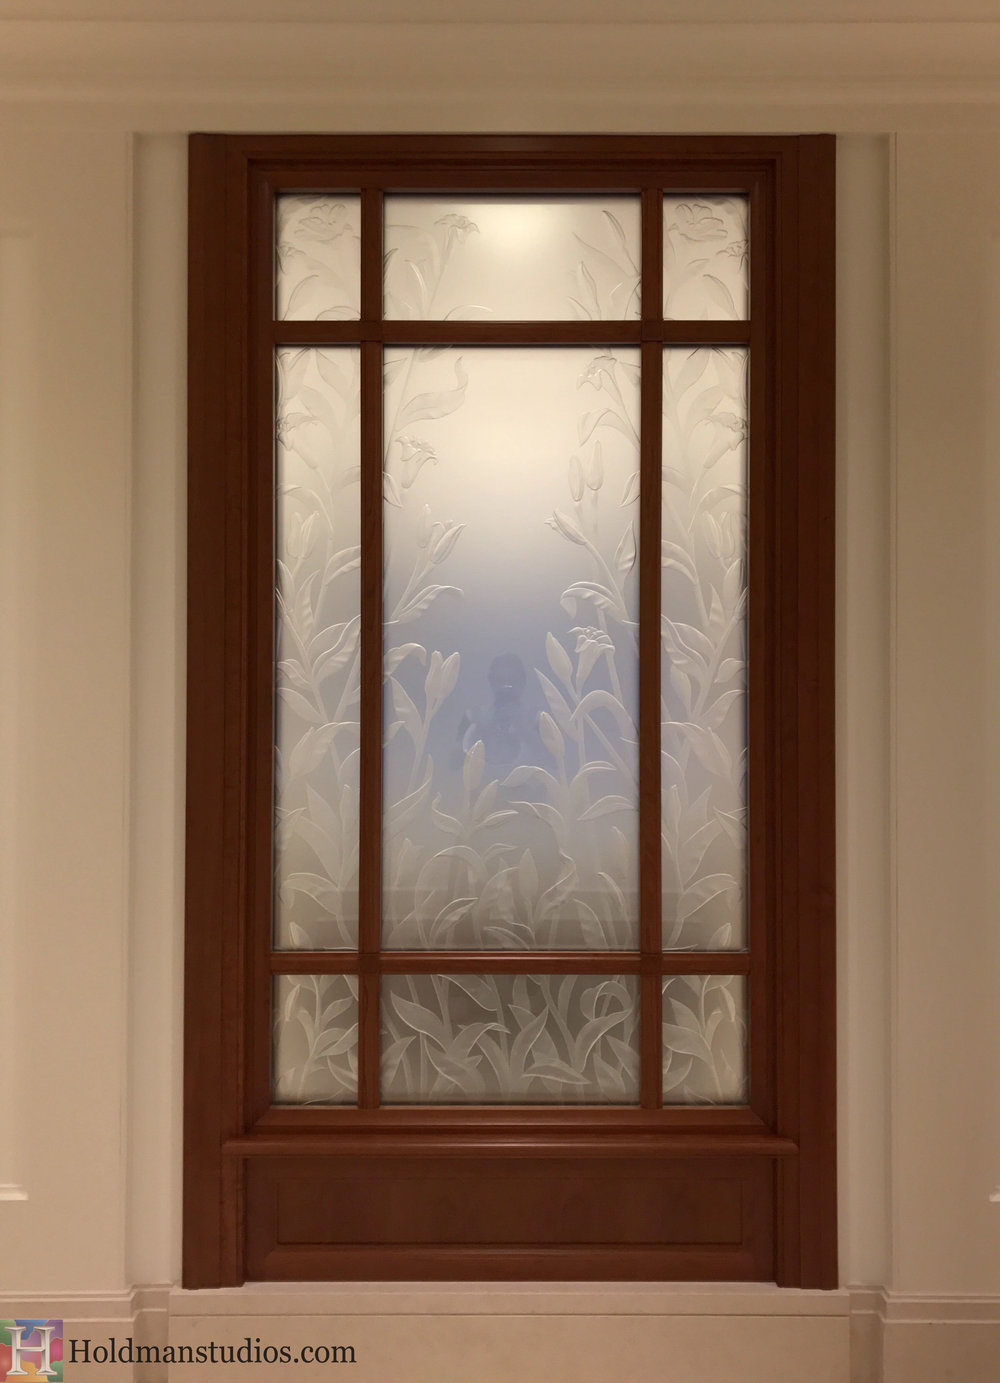 Holdman-Studios-Stained-Etched-Glass-Paris-LDS-Temple-Madona-Lily-Flowers-Interior-Windows.jpg